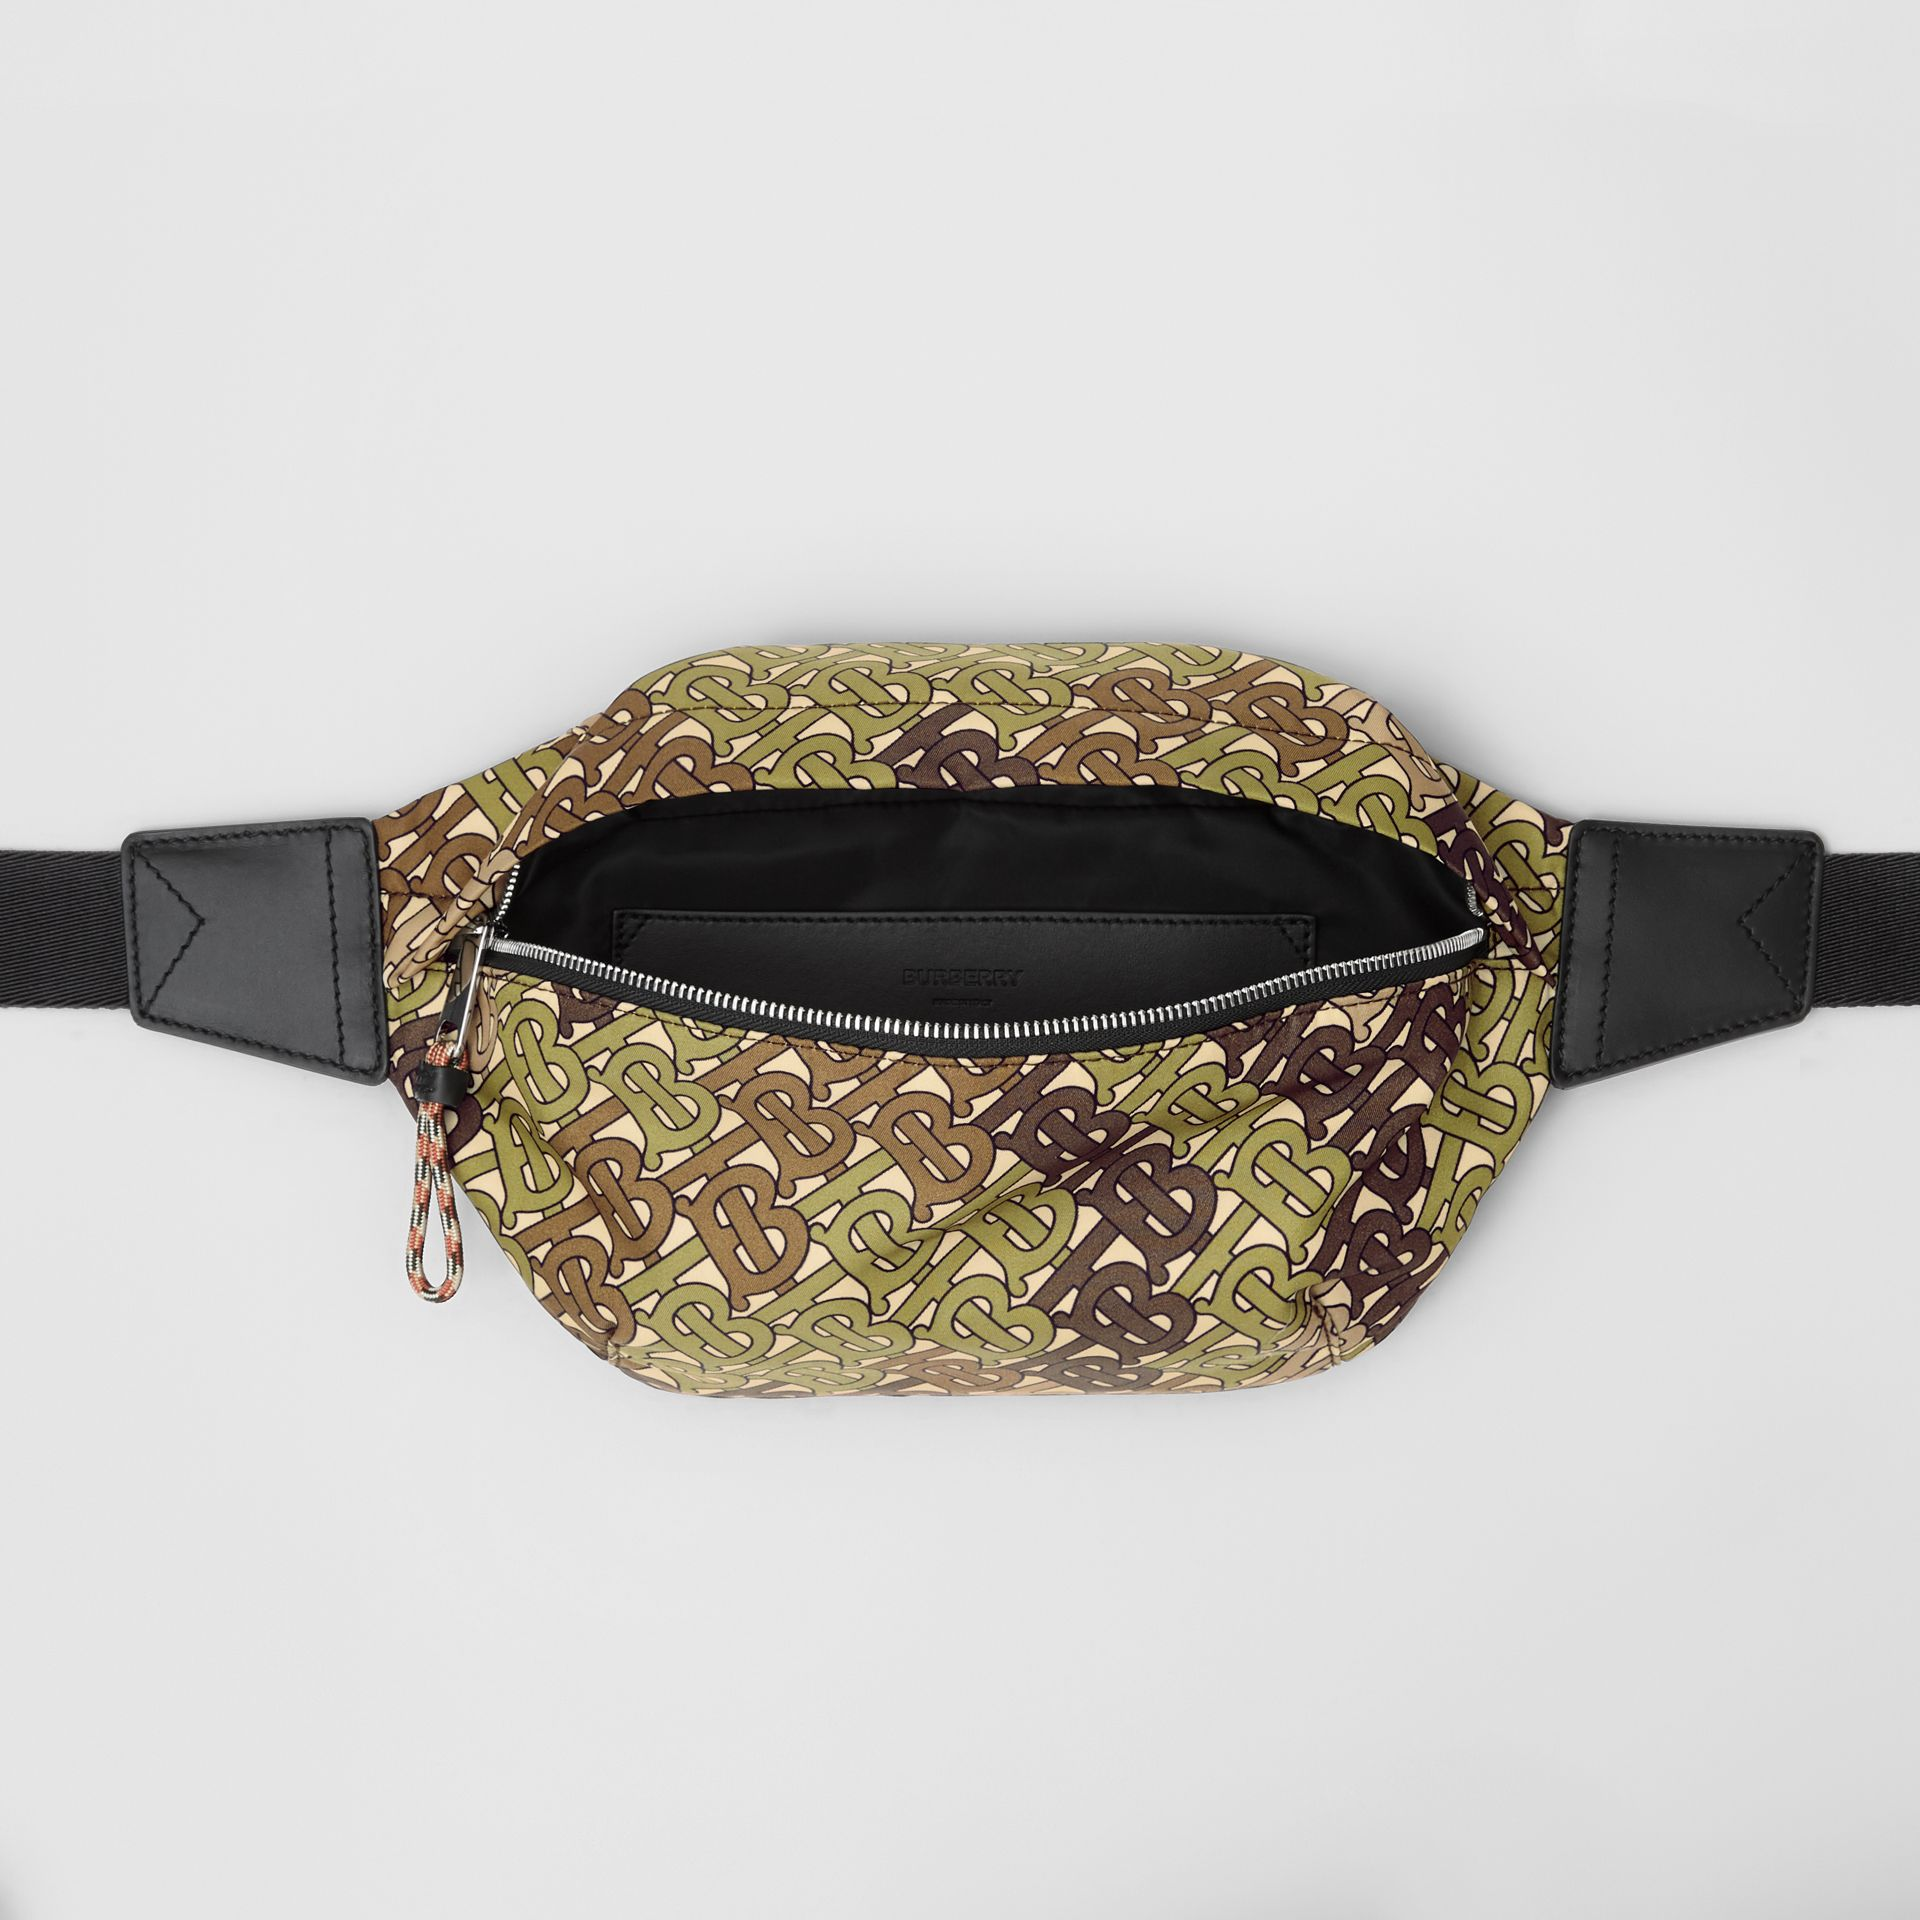 Medium Monogram Print Bum Bag in Khaki Green | Burberry - gallery image 3